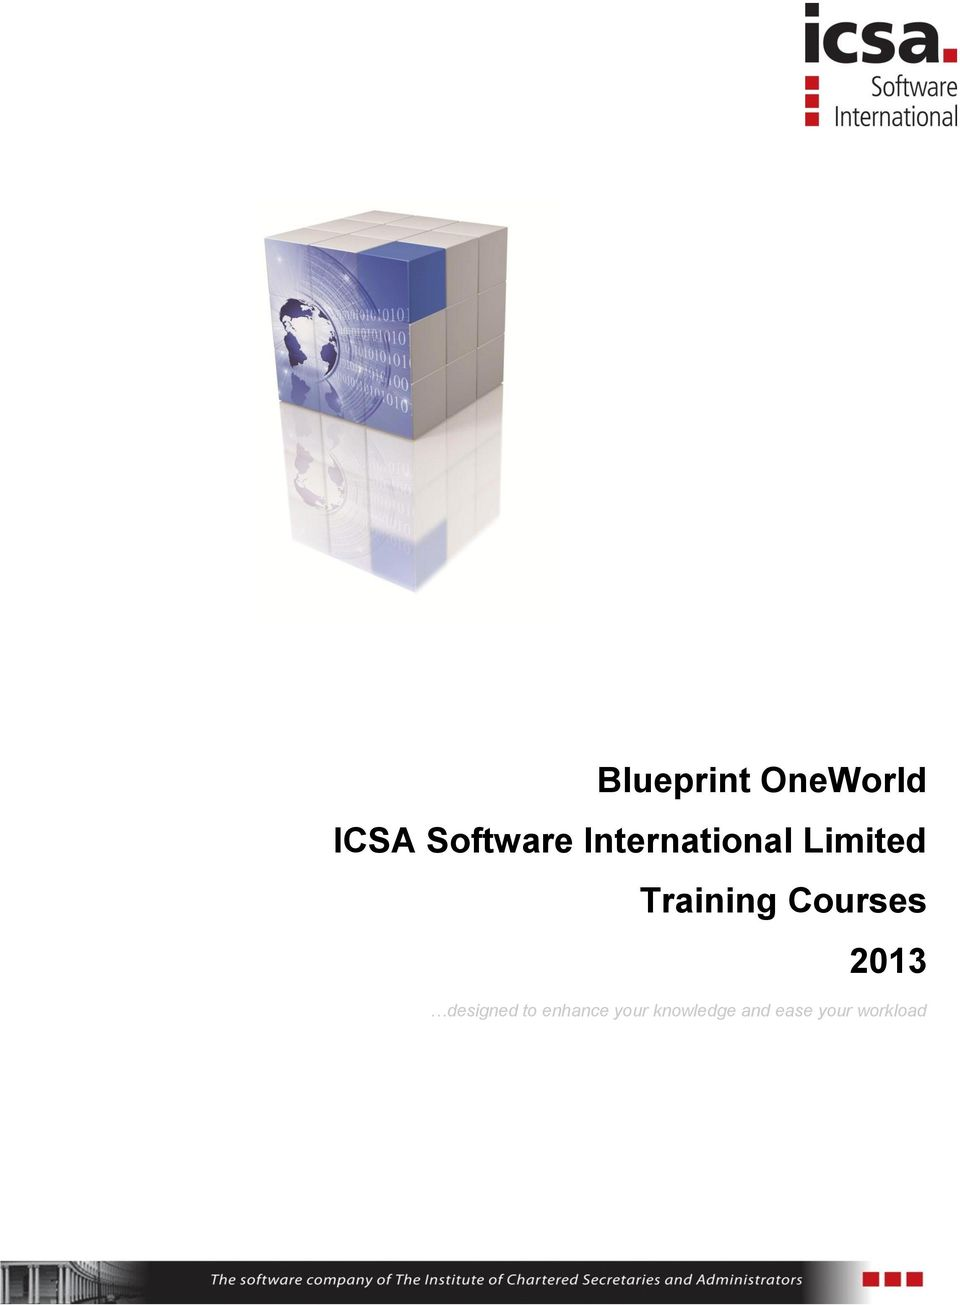 Blueprint oneworld icsa software international limited training curses 2013 designed t enhance malvernweather Gallery